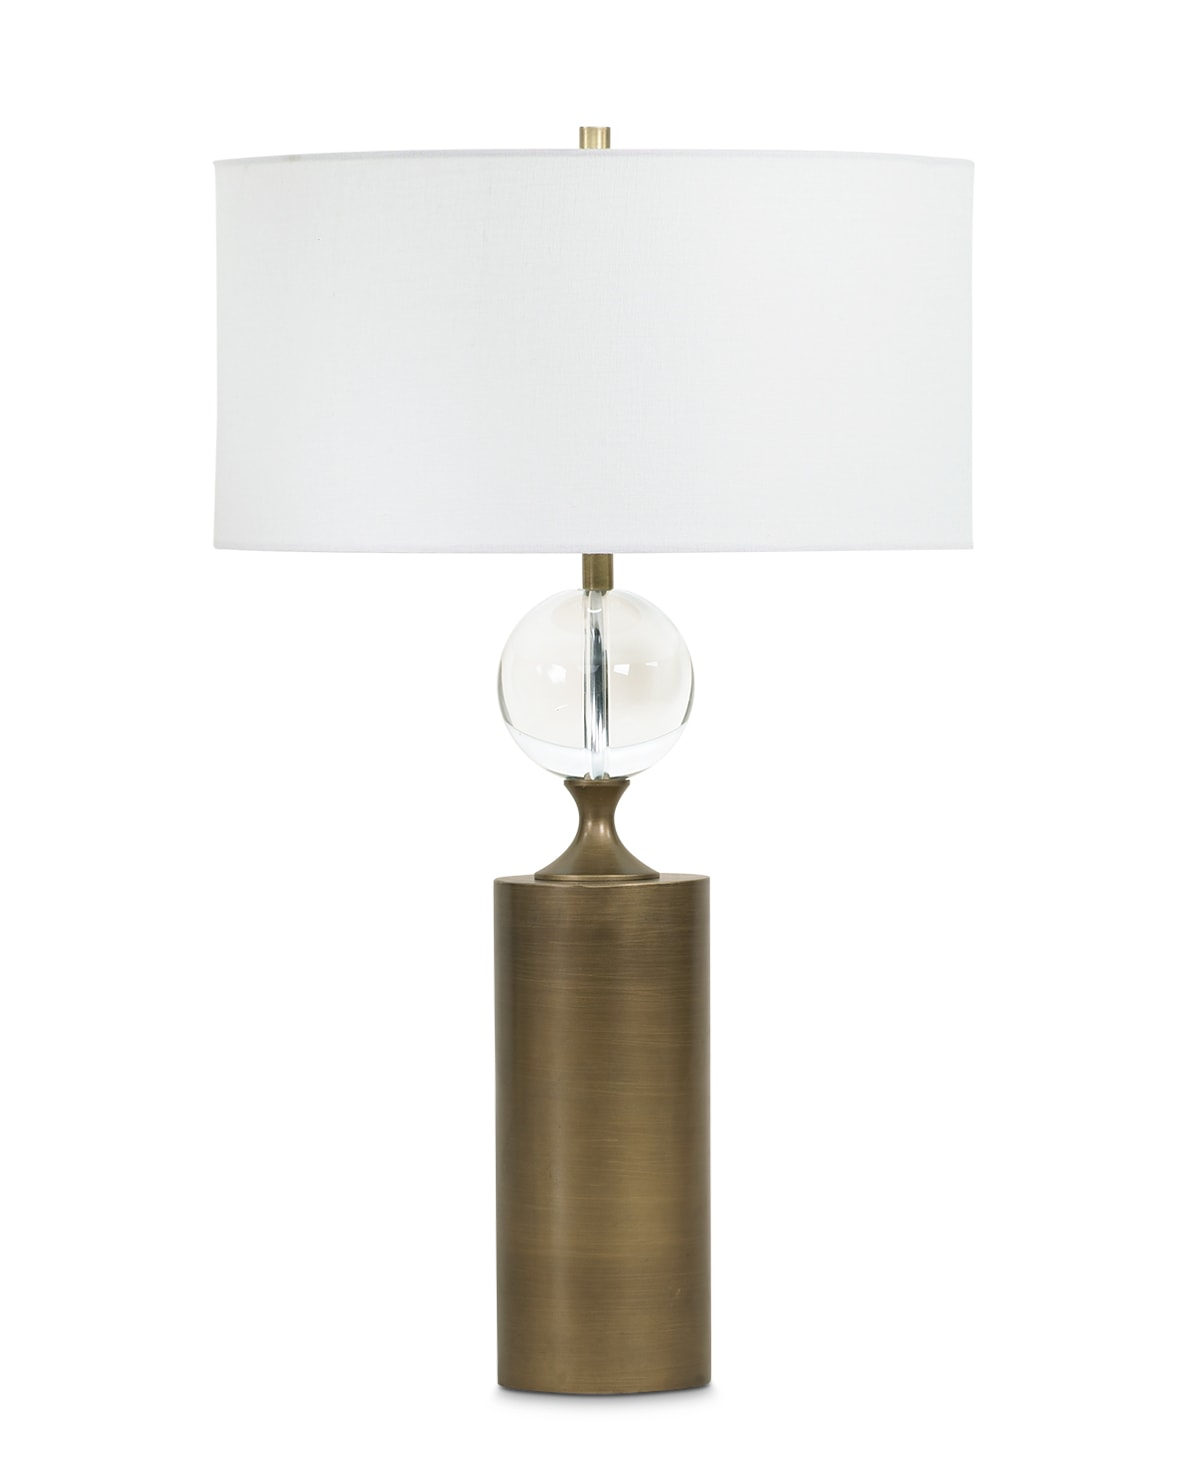 FlowDecor Maple Table Lamp in resin with antique brass finish (Noble AB) and crystal and off-white linen drum shade (# 3646)